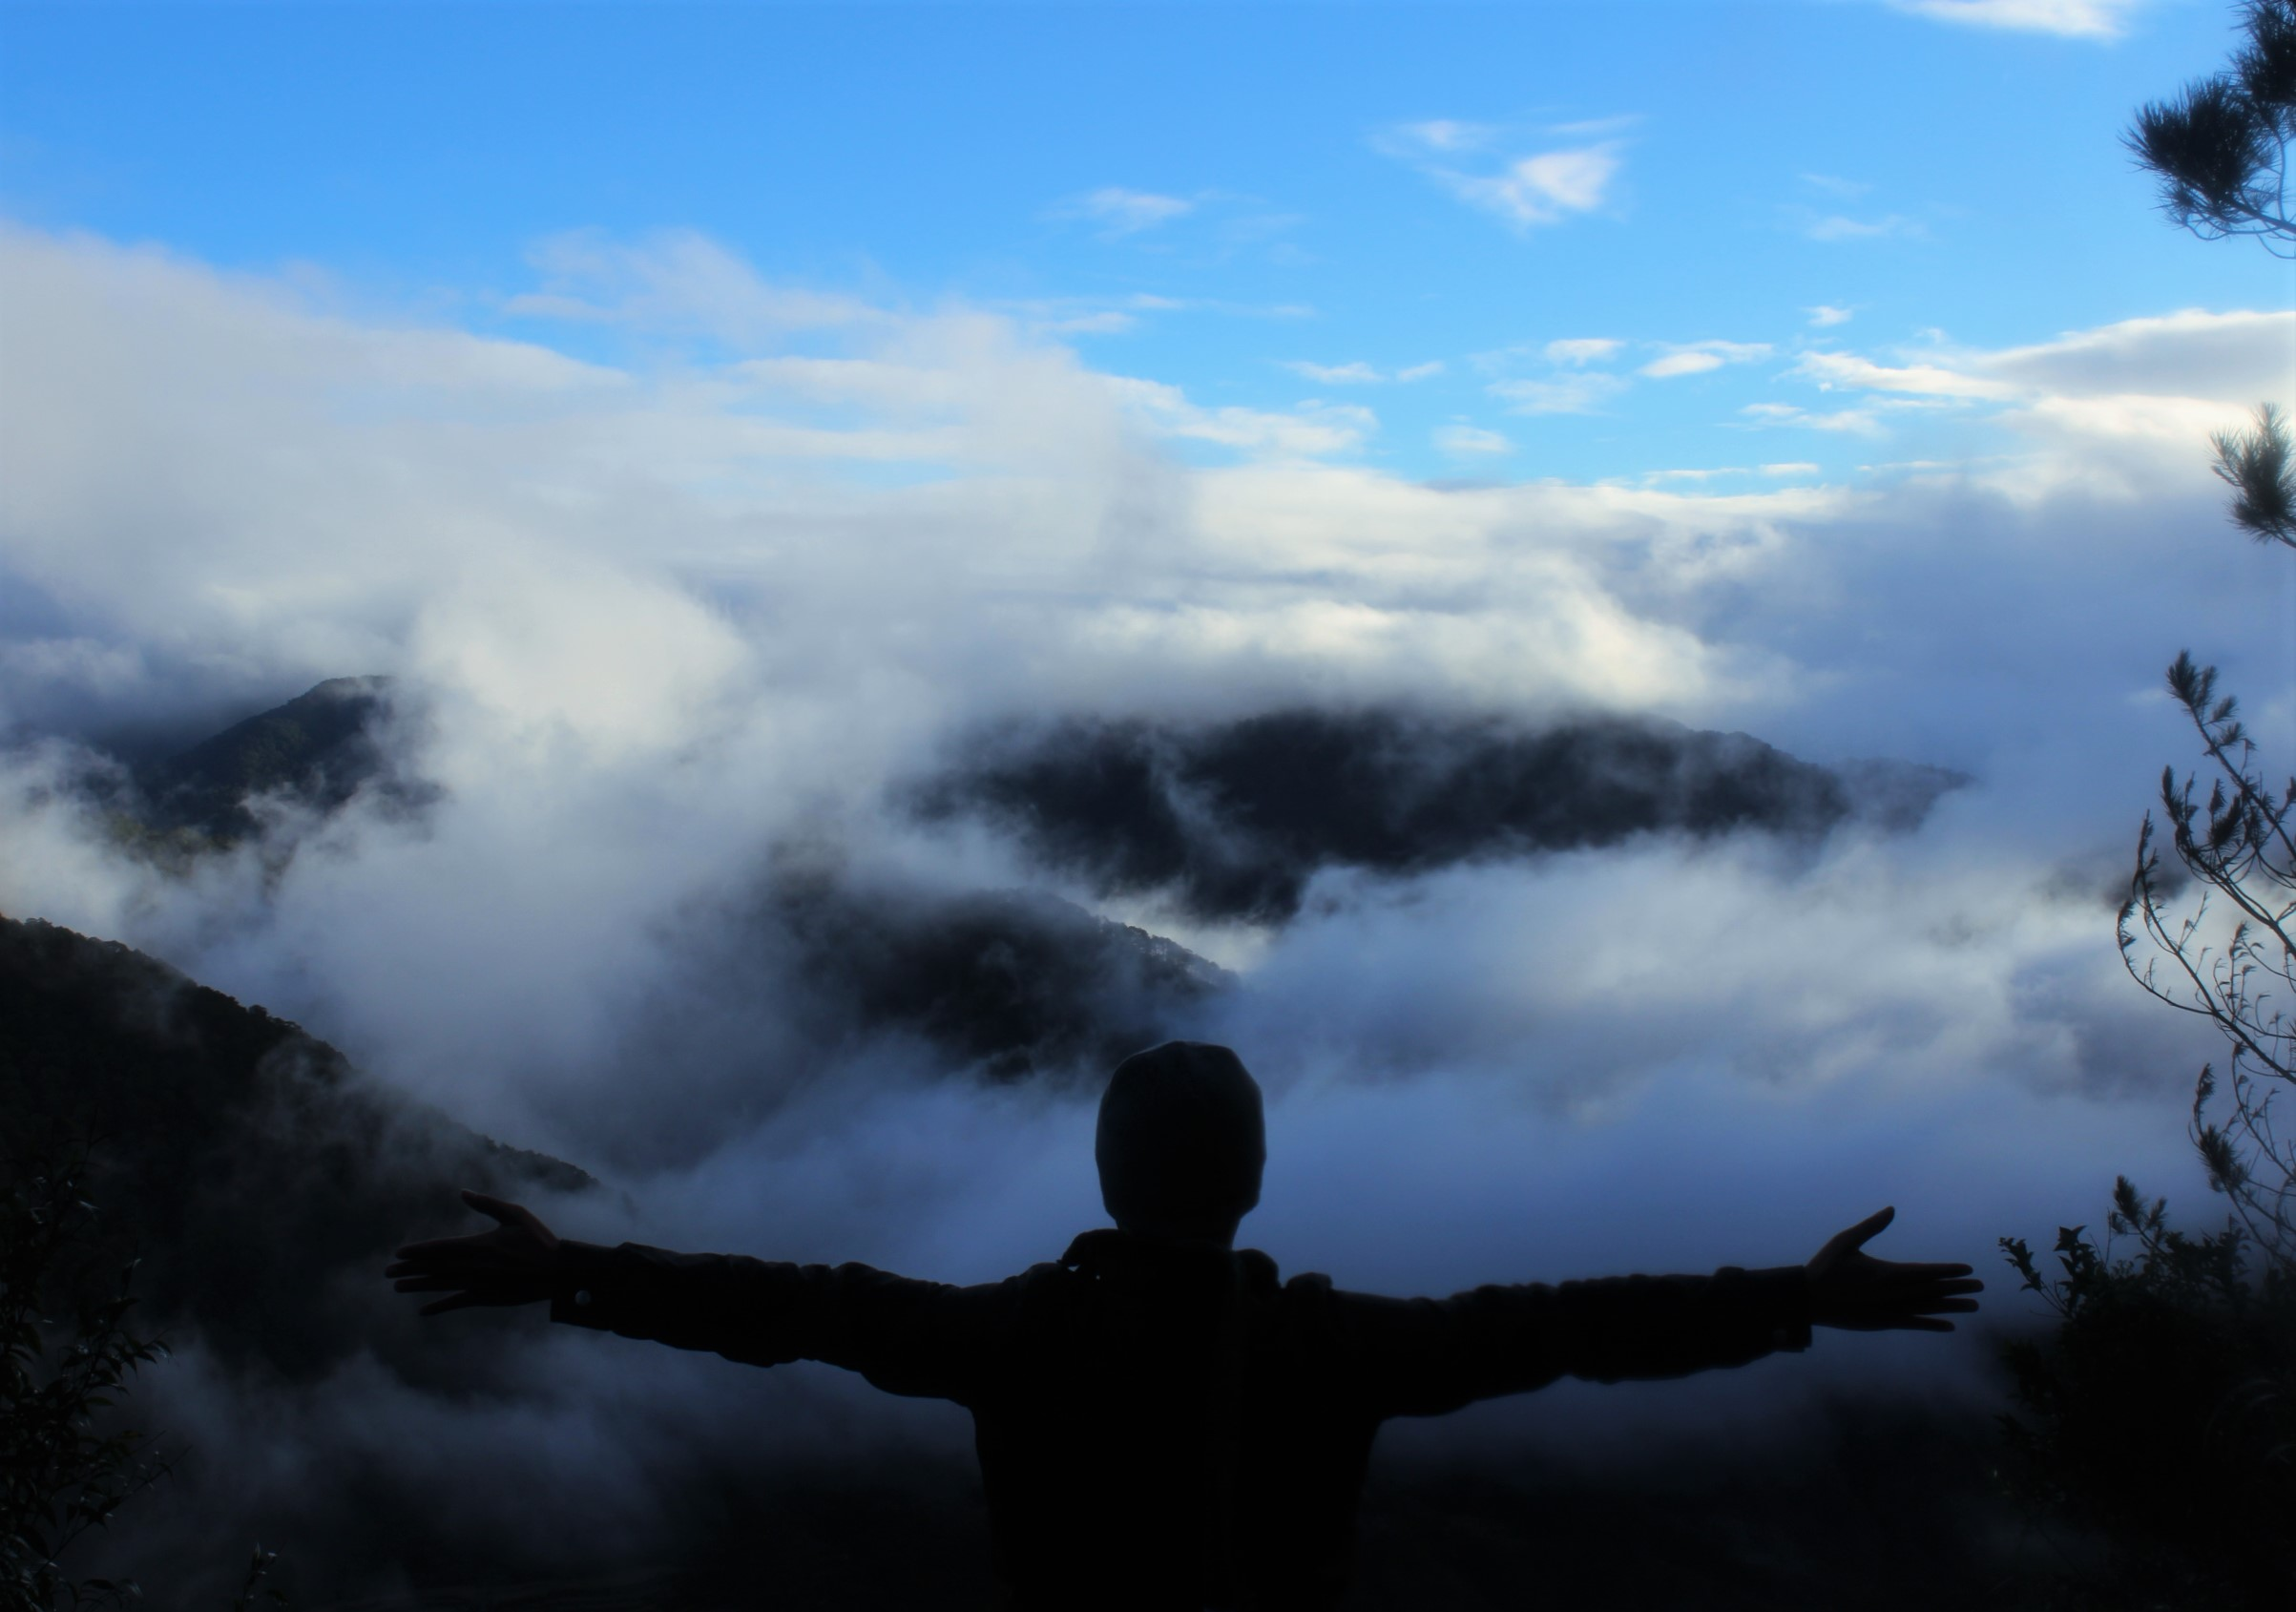 sagada-kiltepan-peak-viewpoint-sea-of-clouds-5